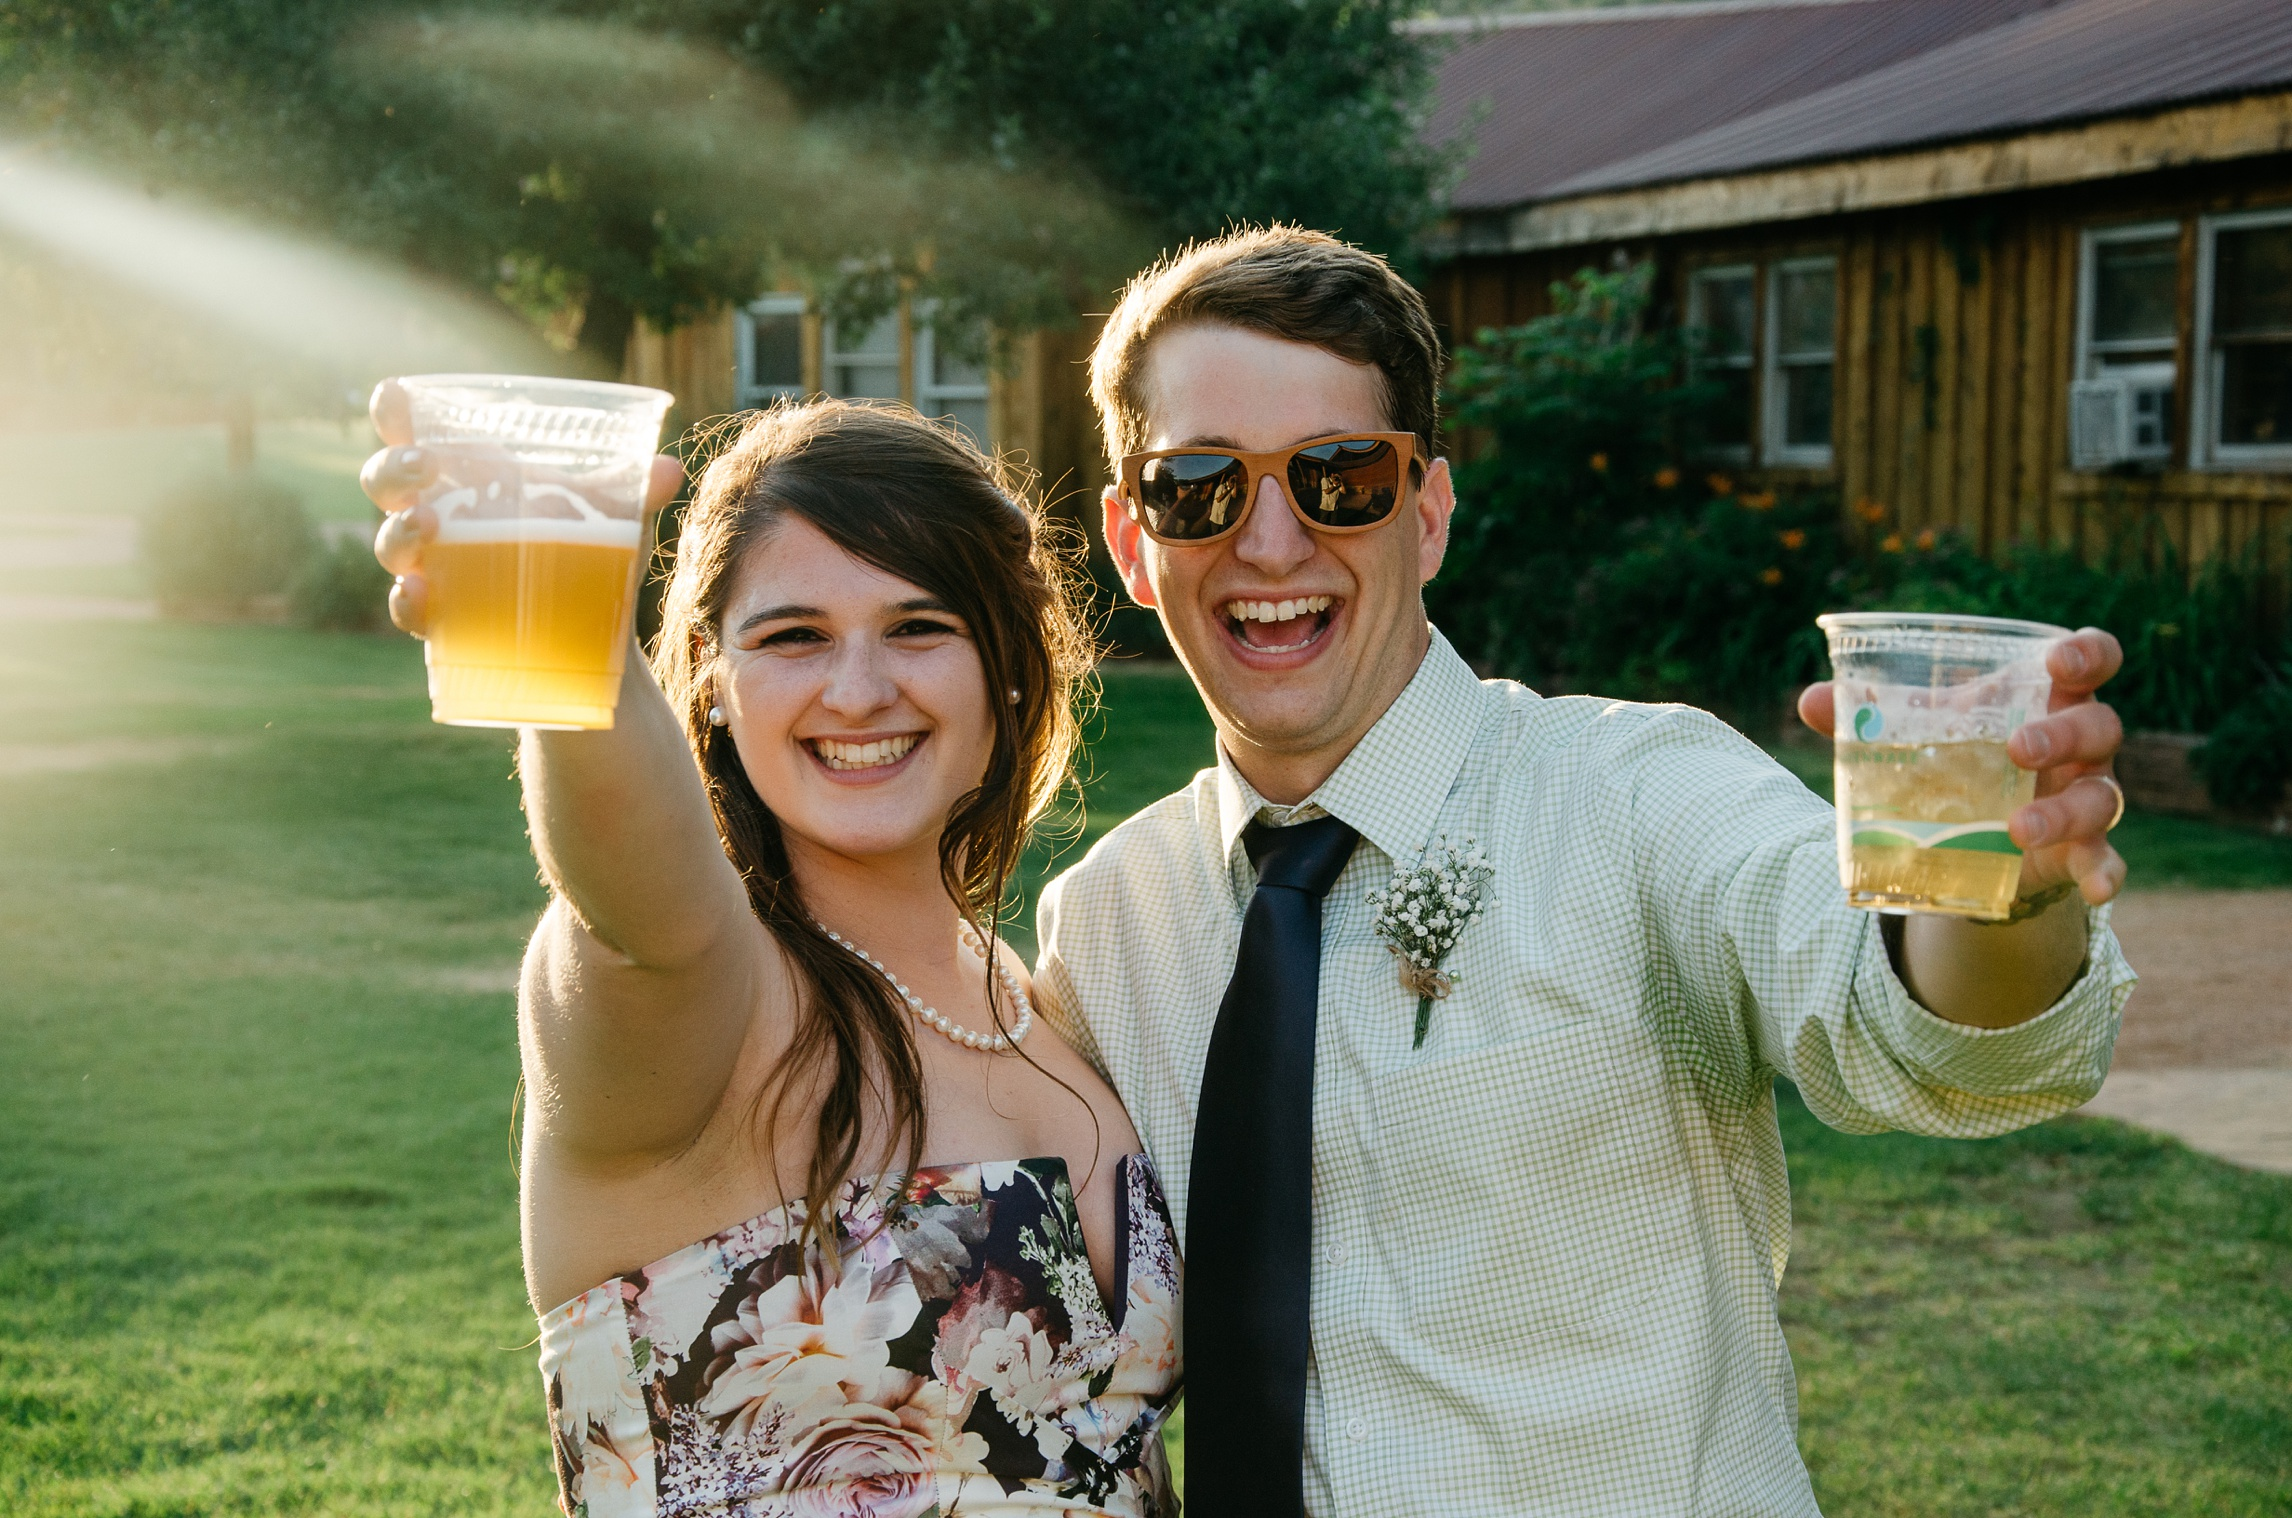 A bridesmaid and a groomsman at a wedding at Planet Bluegrass in Lyons, Colorado. Wedding photography by Max Salzburg of Sonja K Photography.